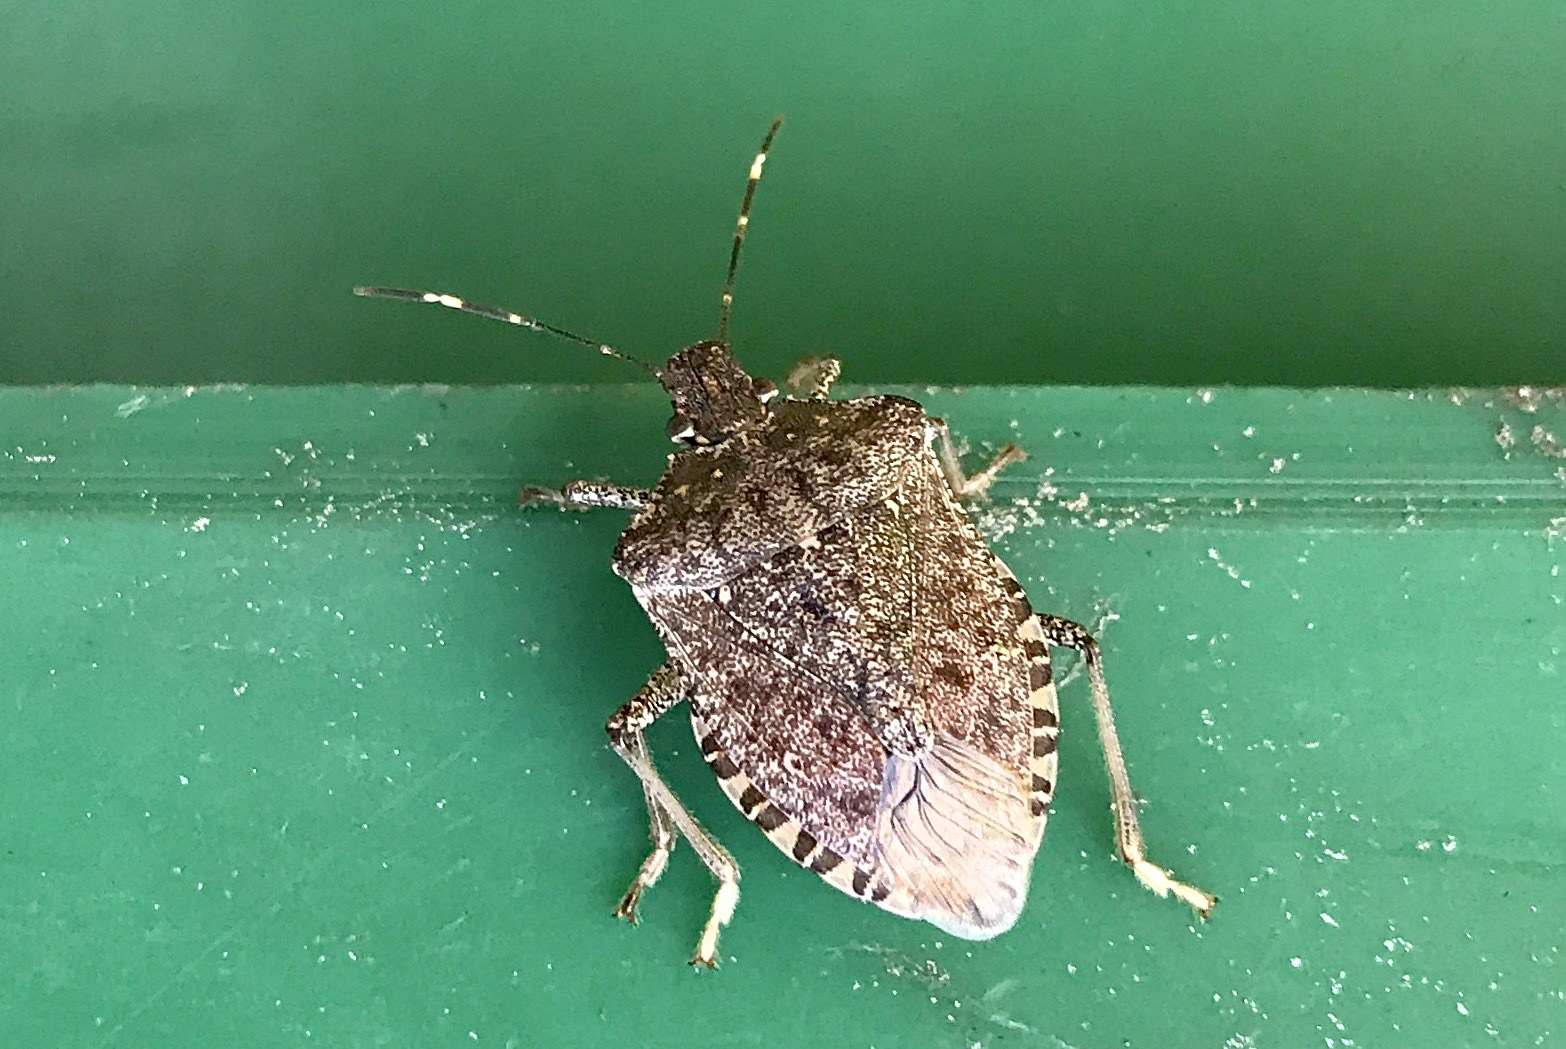 7 creative new ways to get rid of stink bugs for good